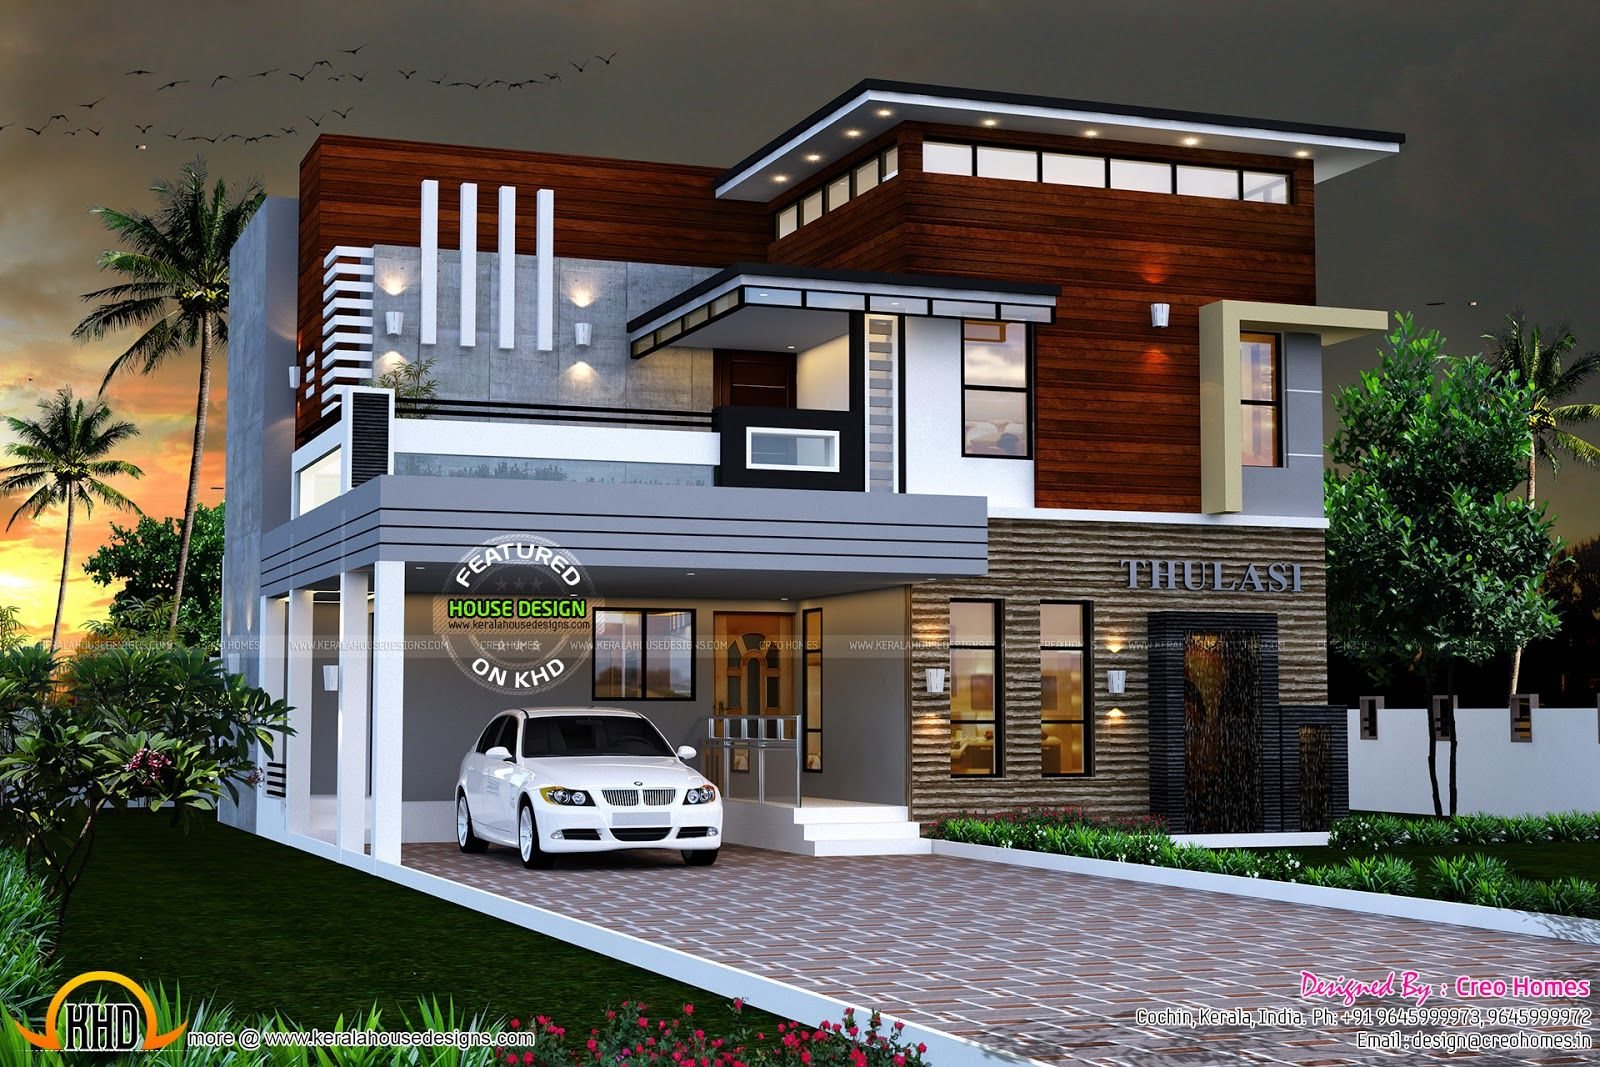 Eterior design modern small house architecture building for Home design sites